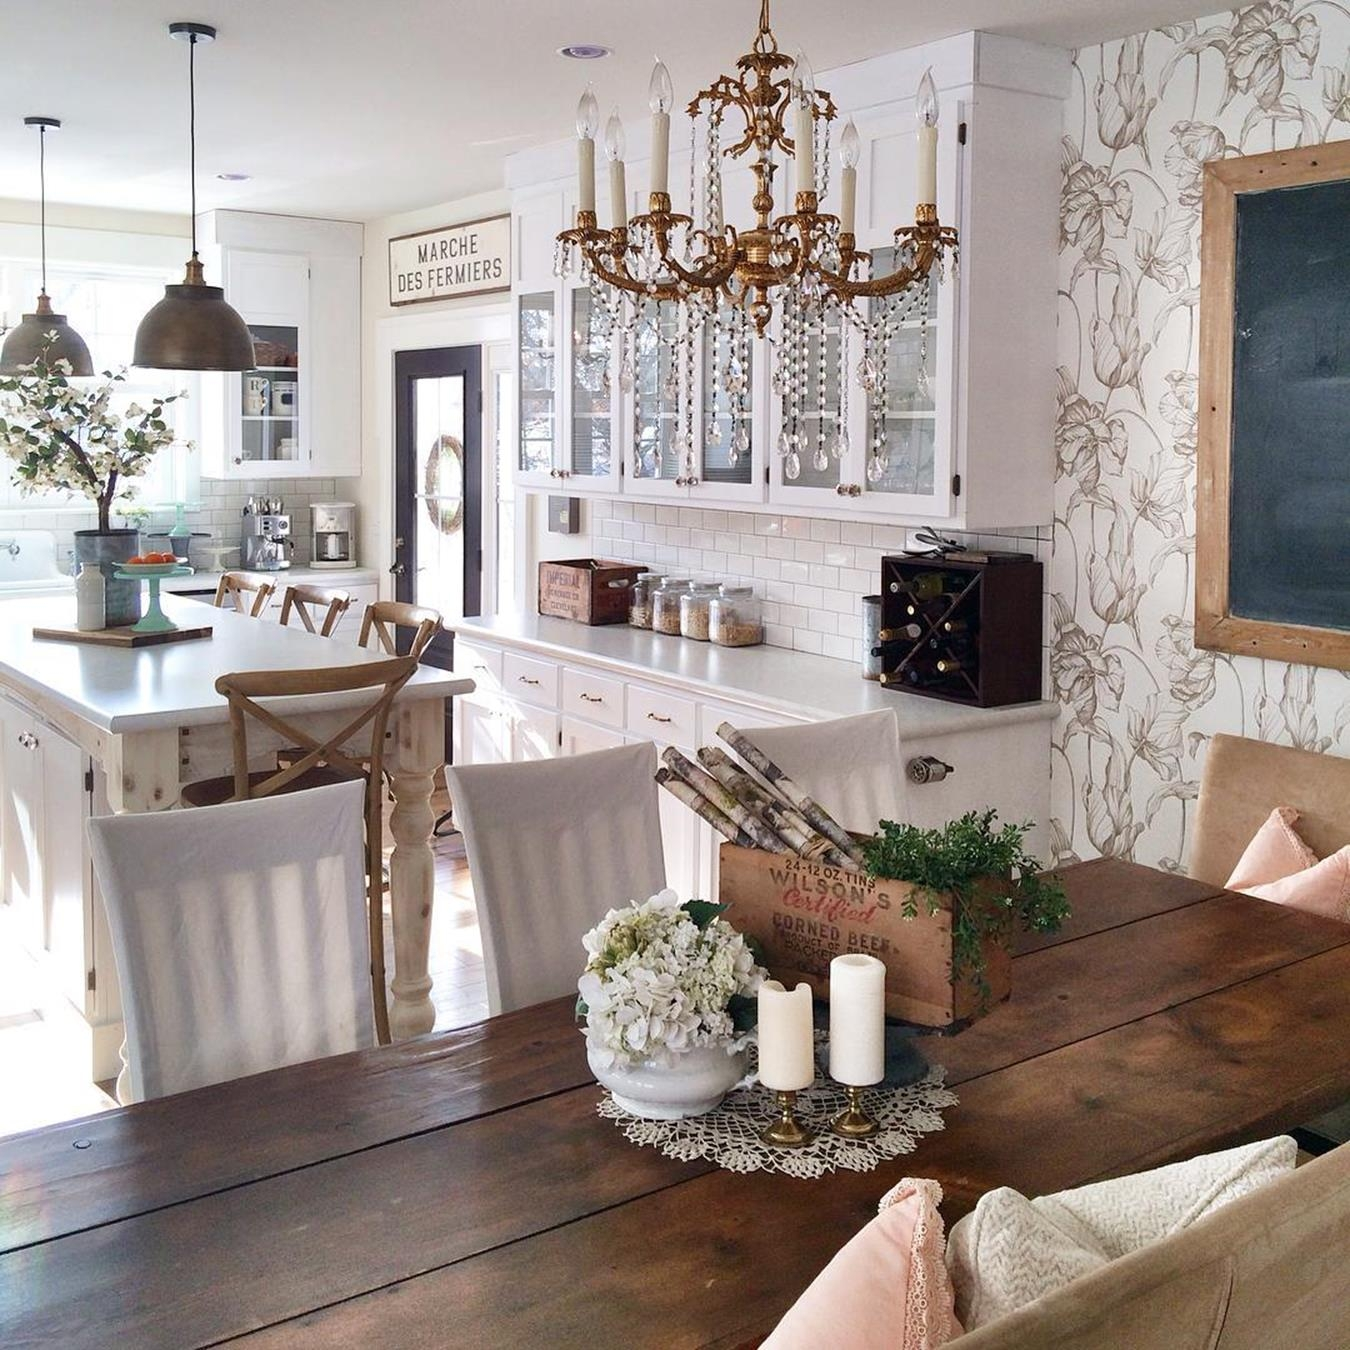 16 Stunning French Style Living Room Ideas: 50+ French Country Kitchen Decor You'll Love In 2020